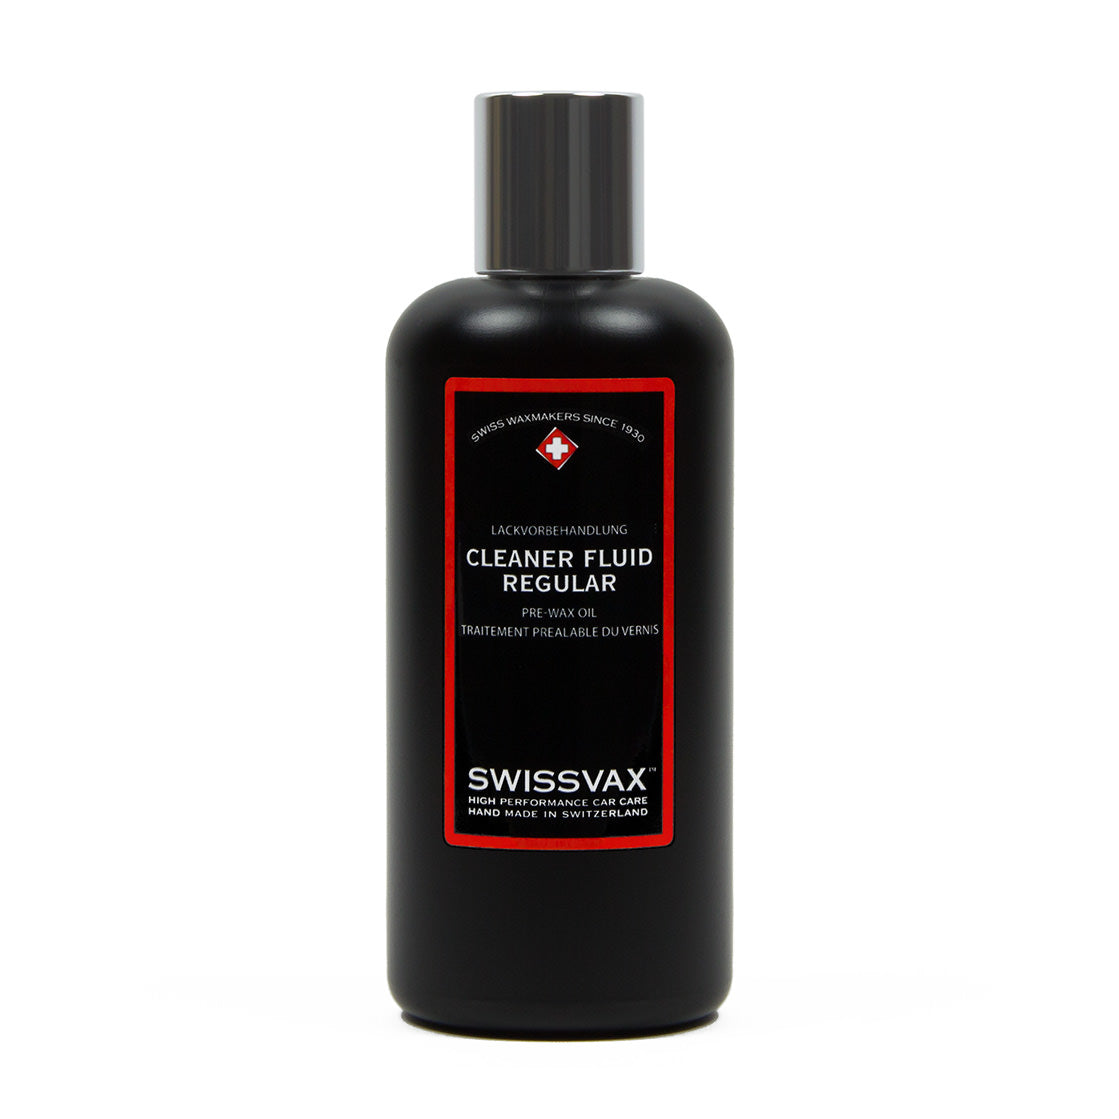 Swissvax Cleaner Fluid Regular